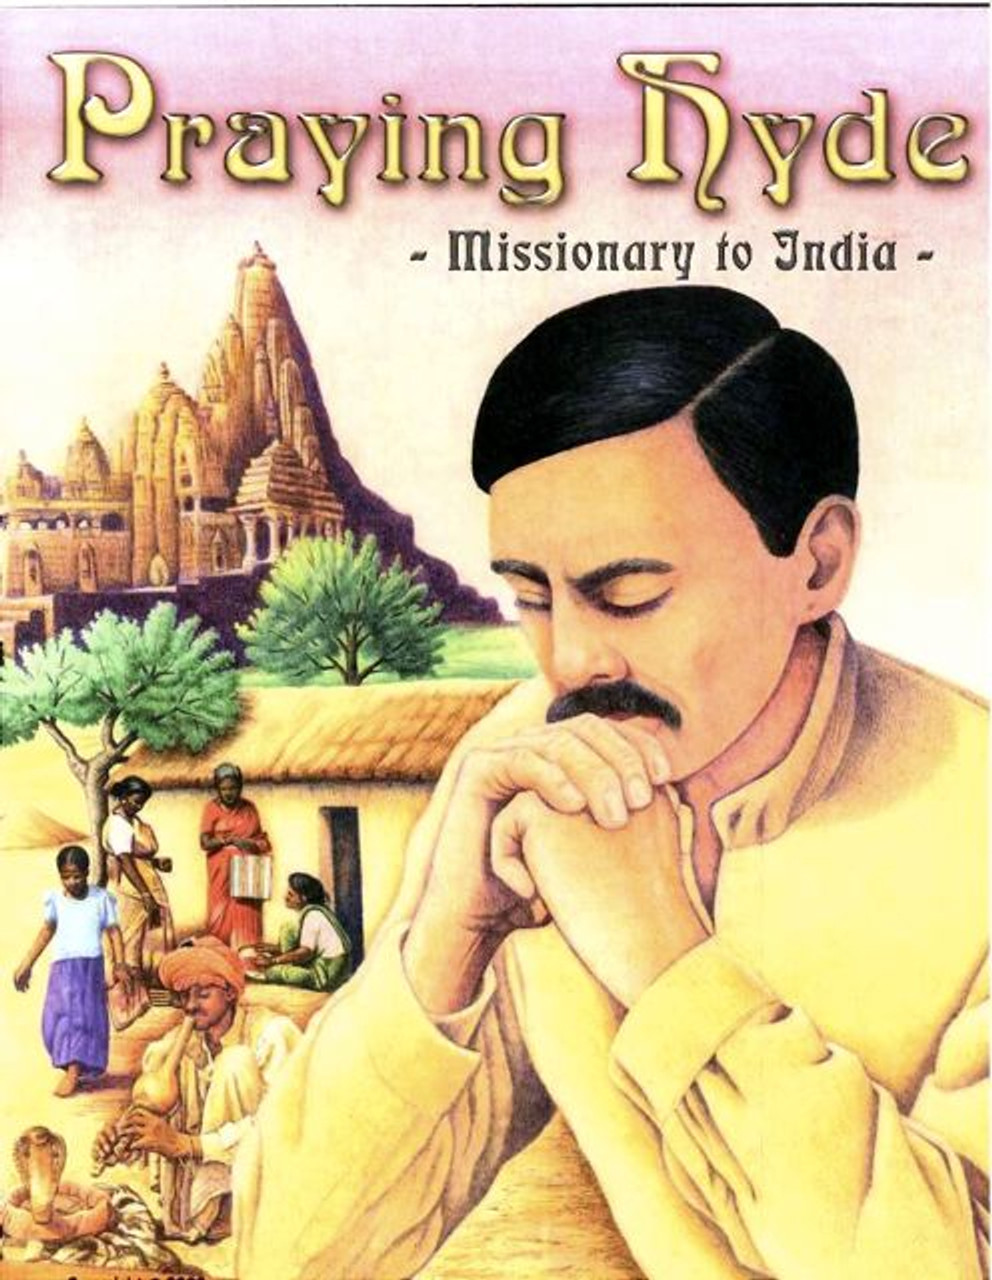 Praying Hyde Missionary to India (visuals only)